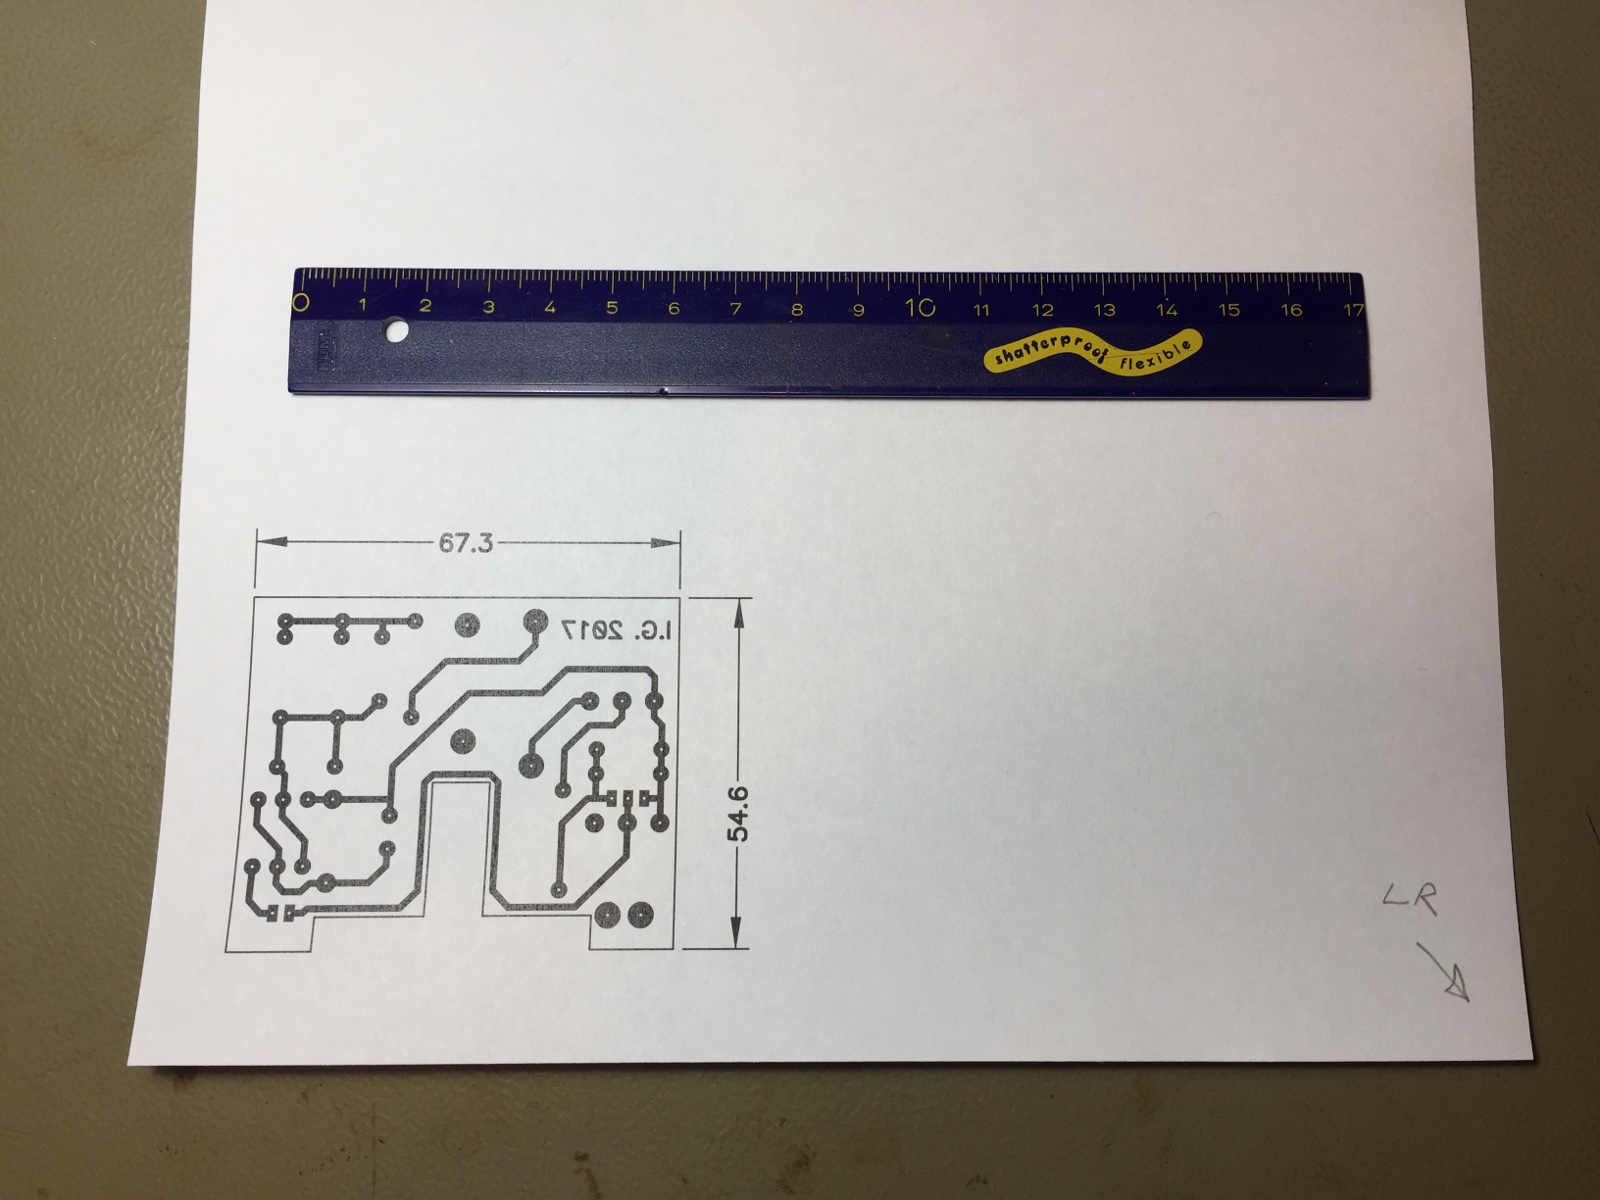 Etching printed circuits boards at home